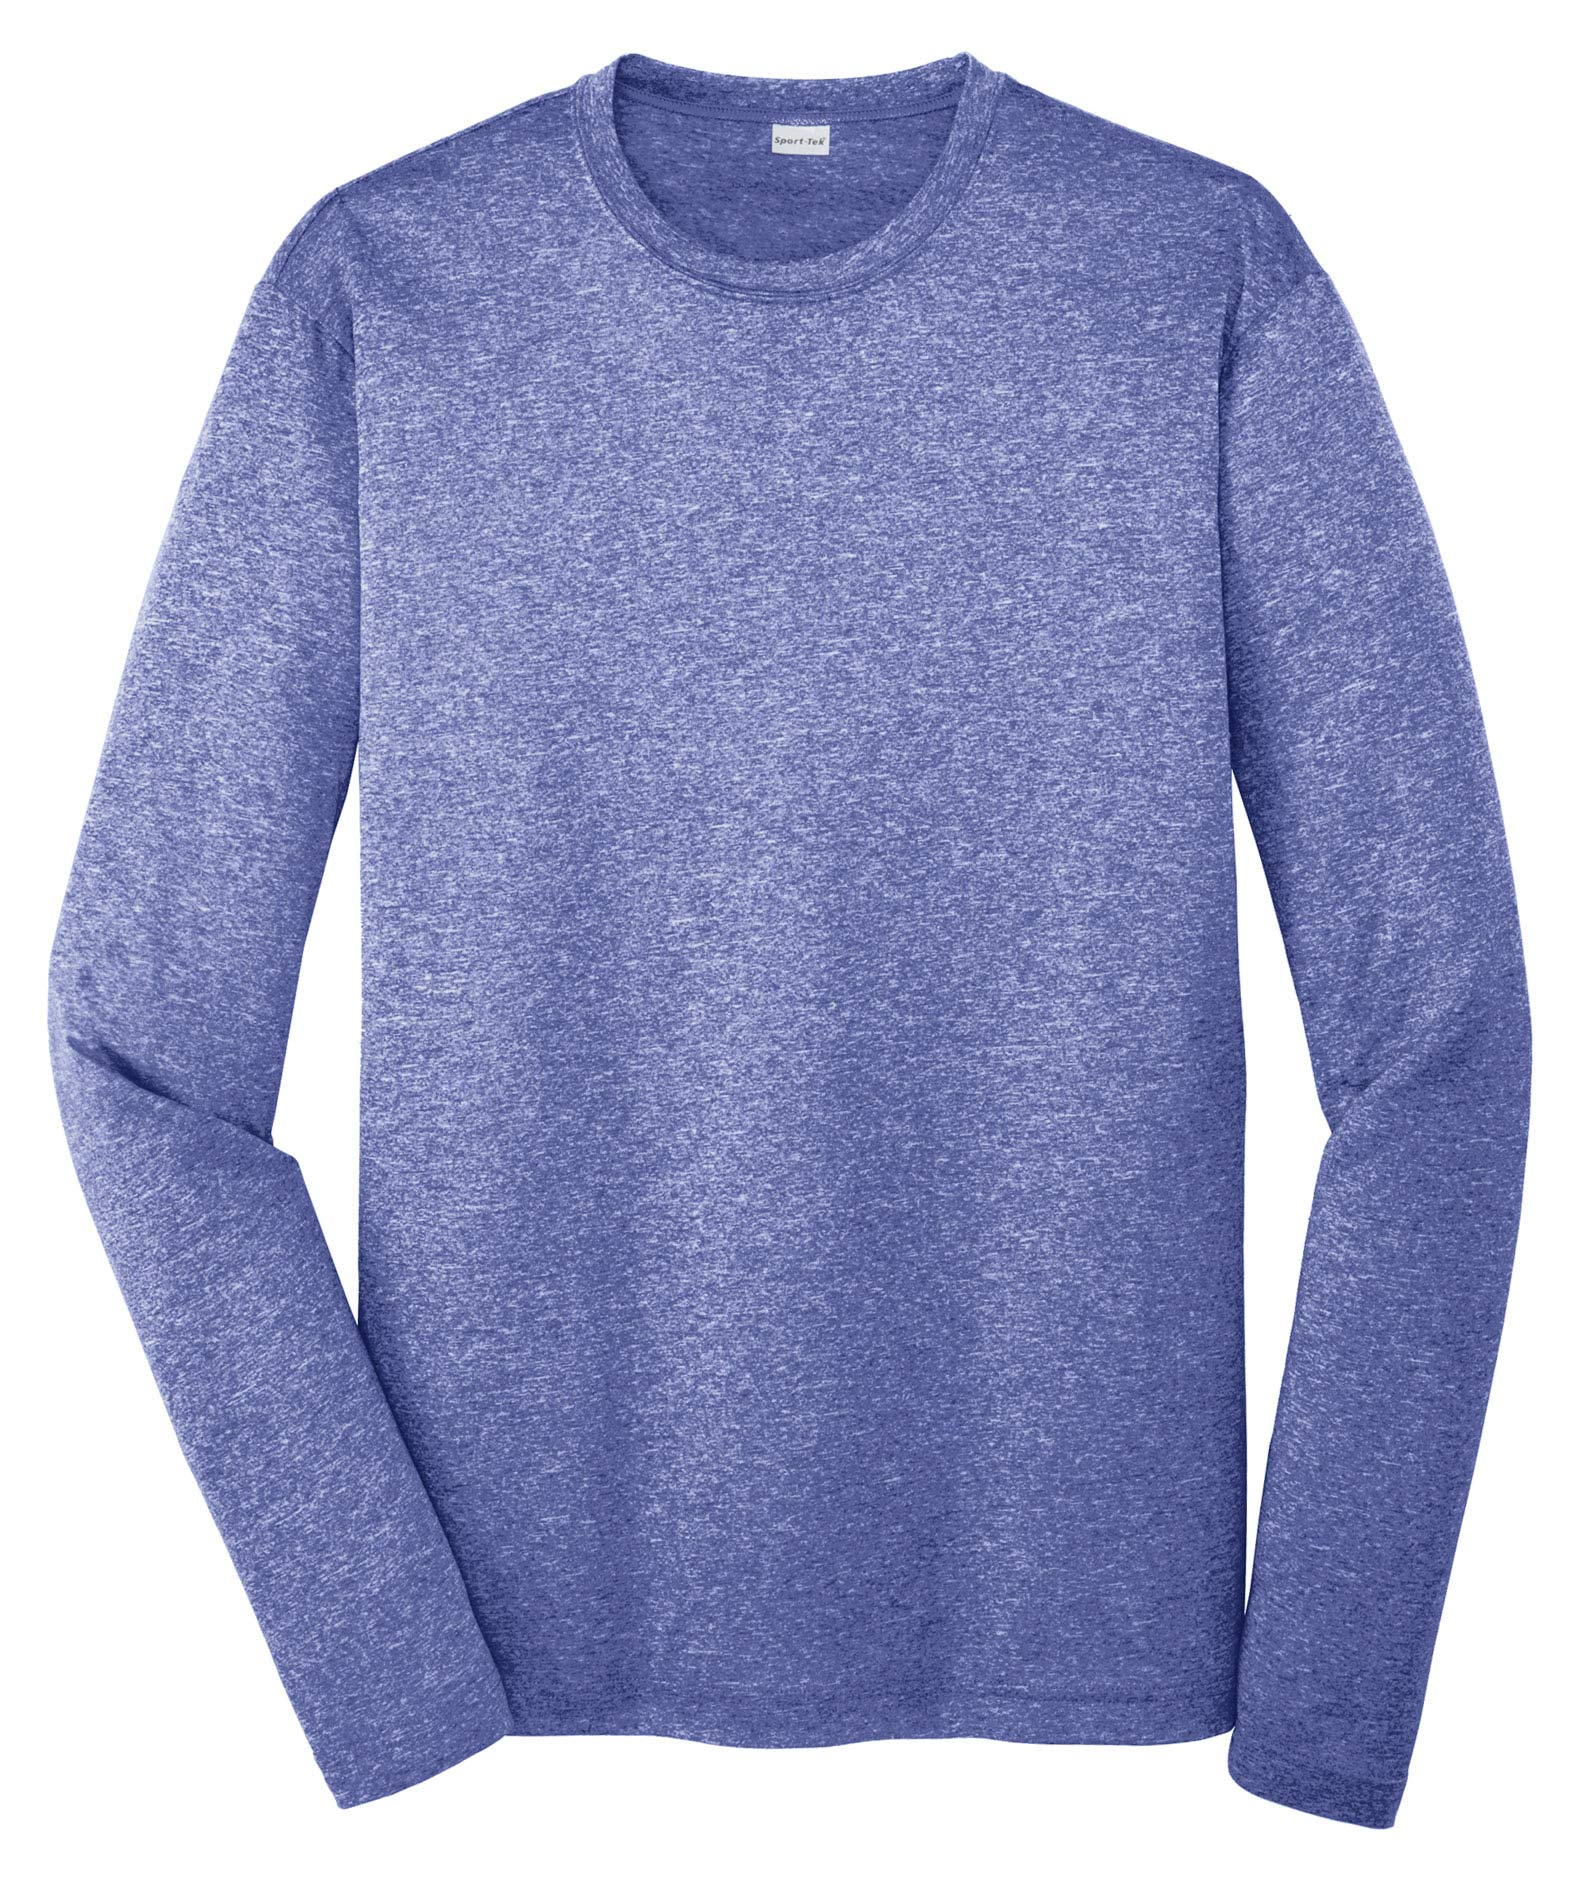 Adult Long Sleeve Heather Contender Tee